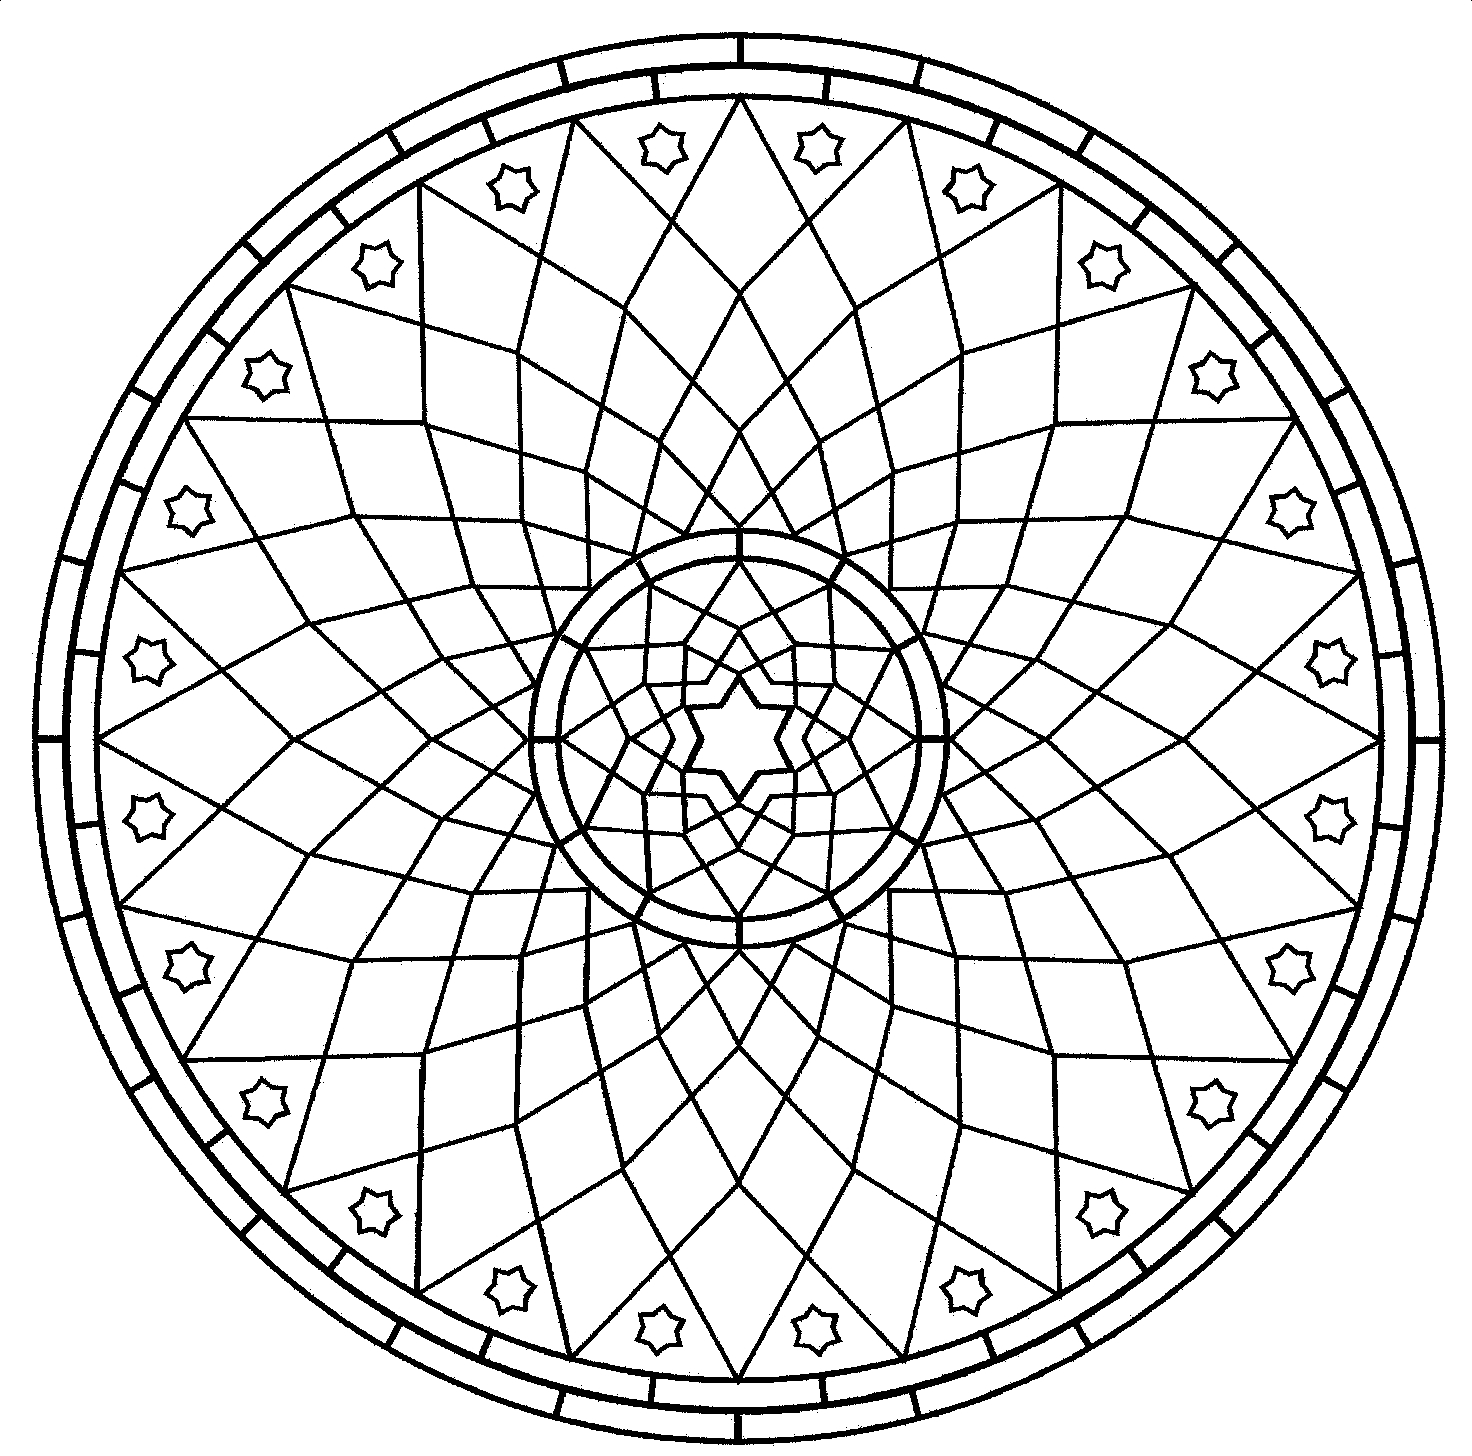 coloring pages geometric shapes - photo#16